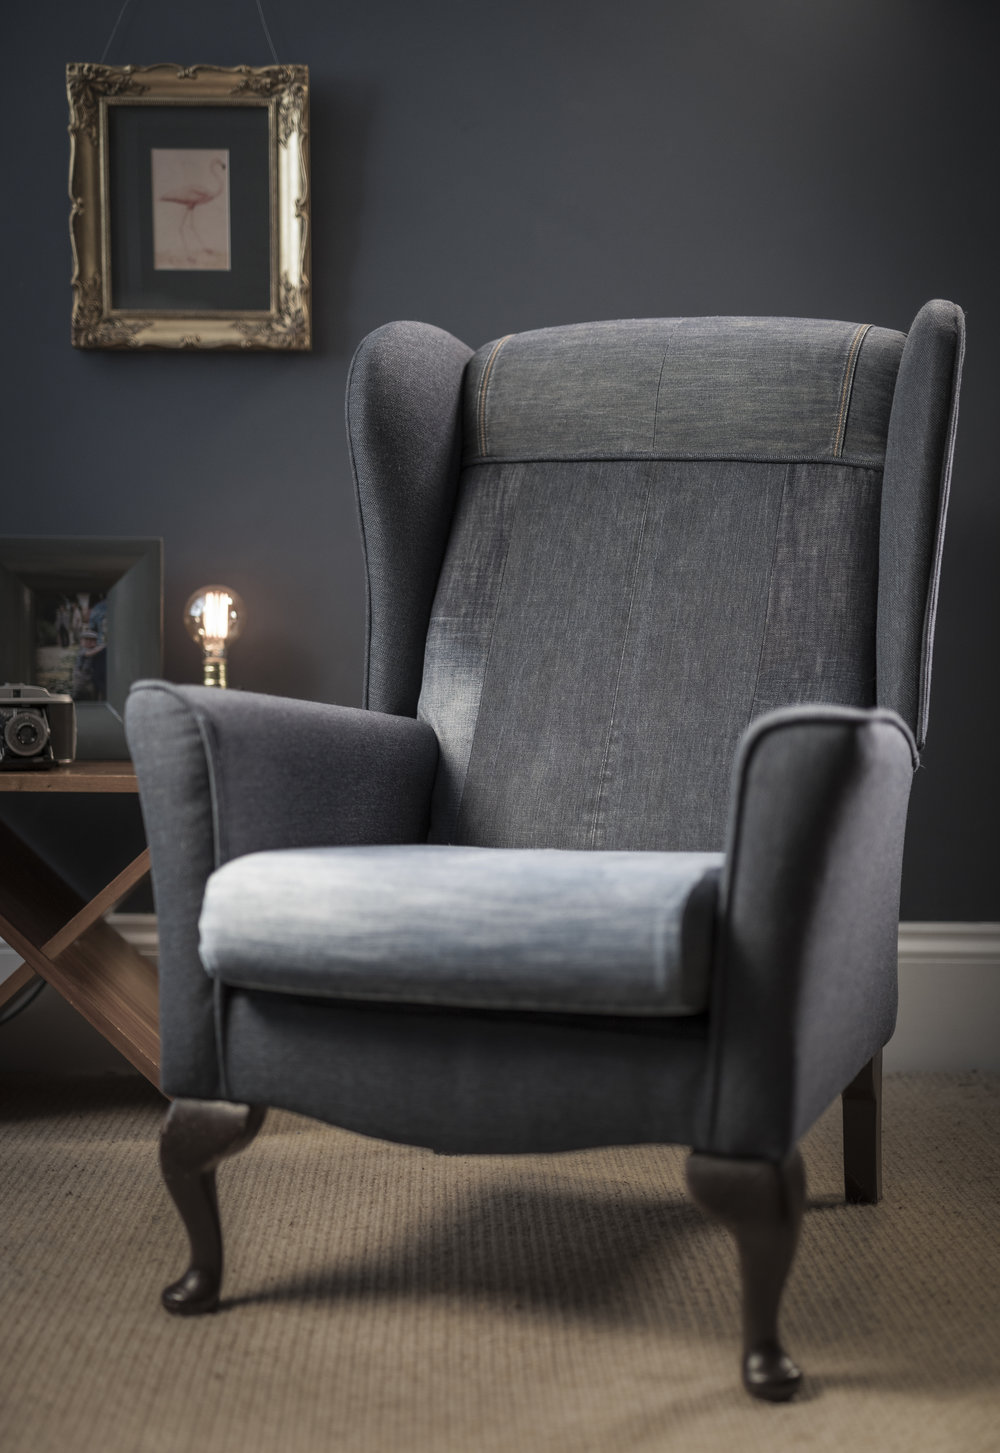 Denim Wingback chair